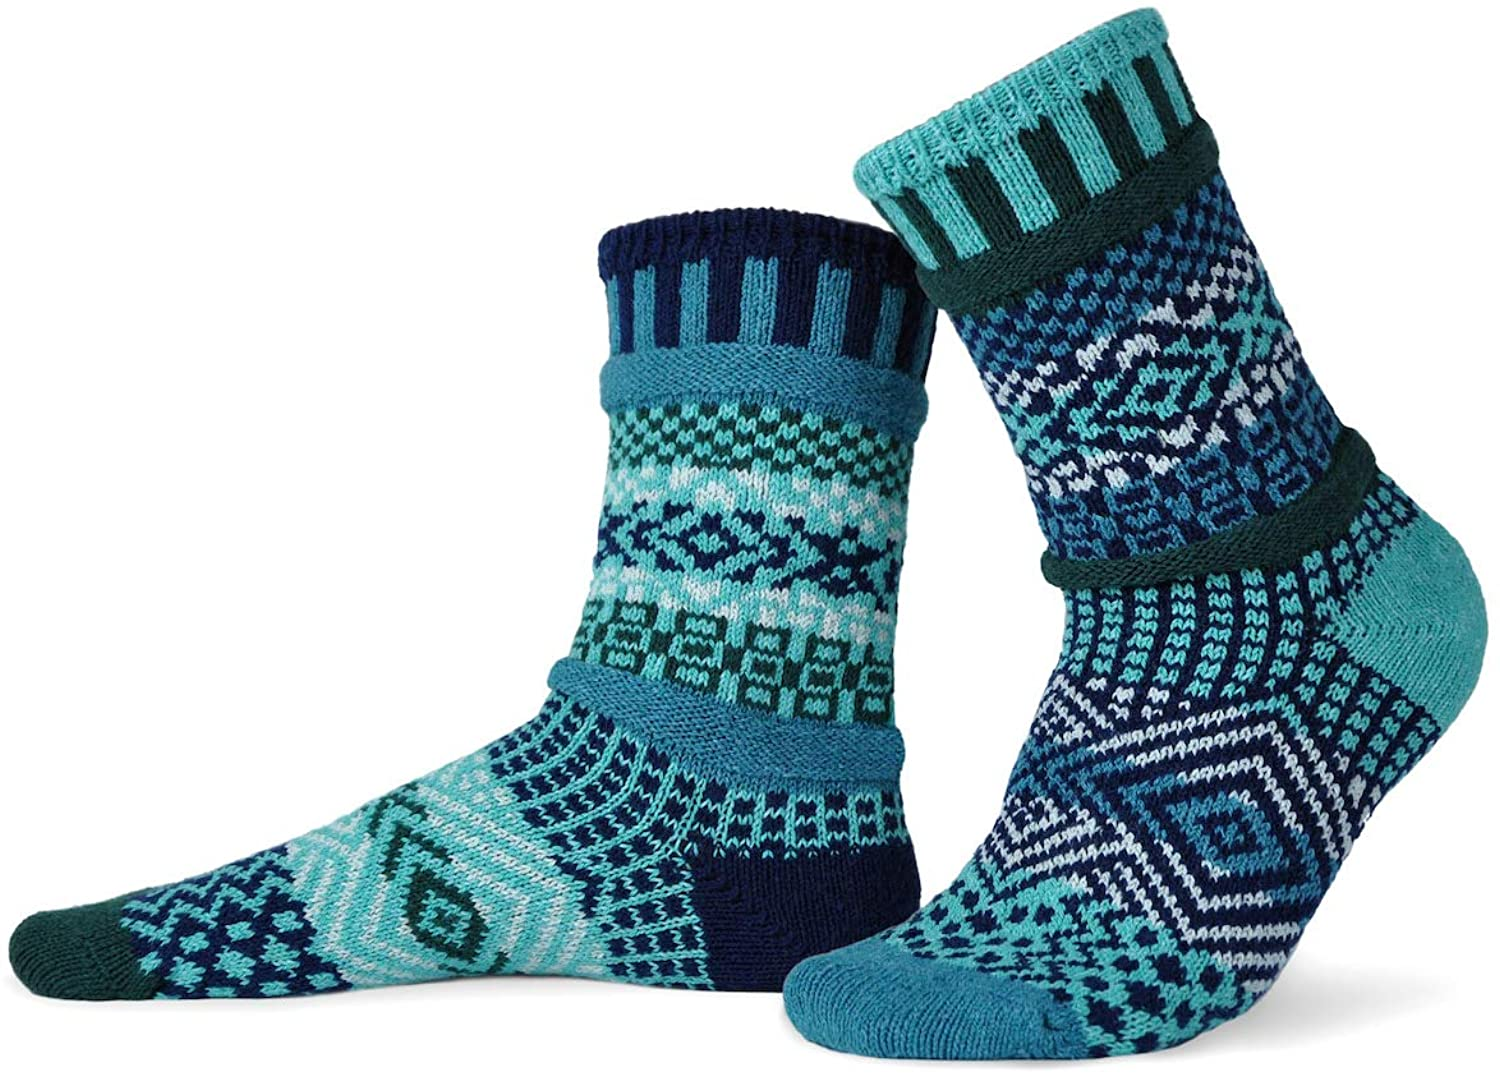 Solmate Socks - Mismatched Crew Socks; Made in USA; Evergreen Large